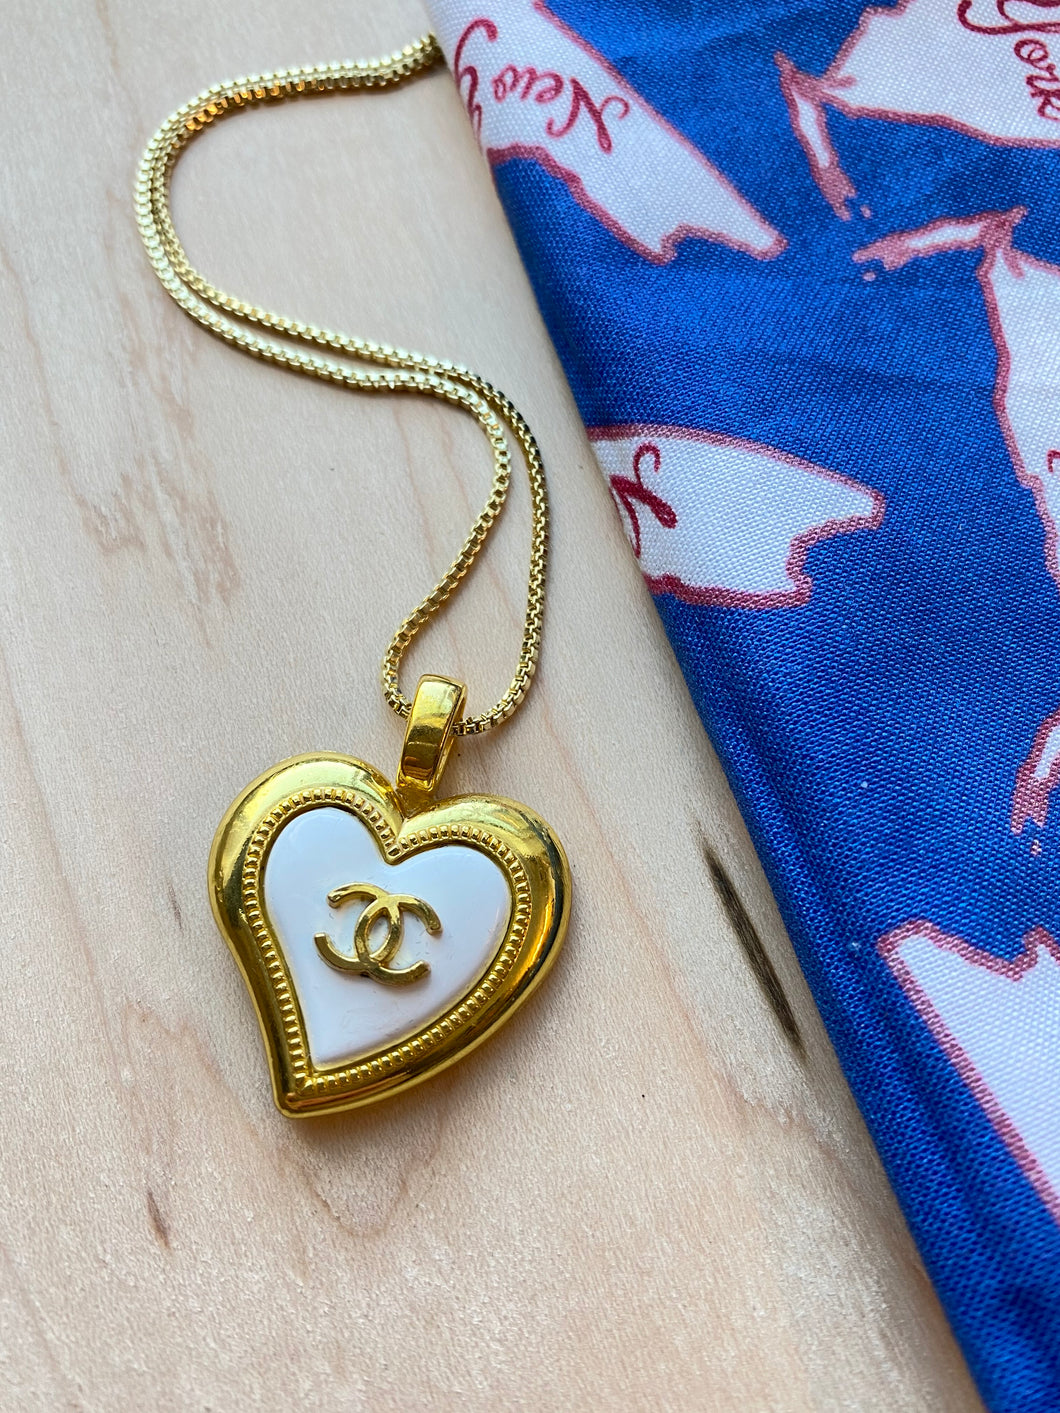 Upcycled Heart Necklace